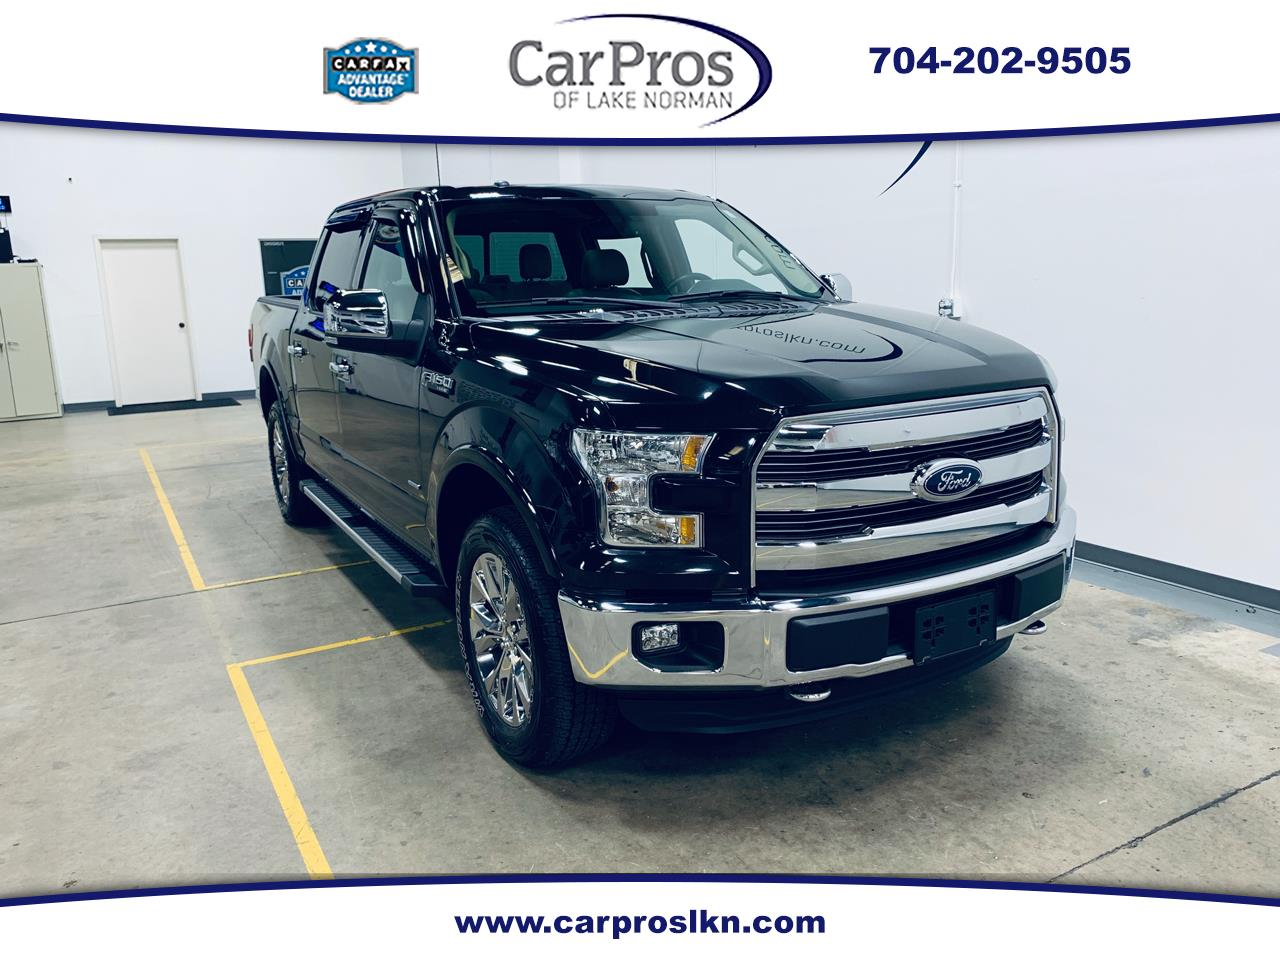 2015 Ford F-150 4WD SuperCrew Lariat FX4